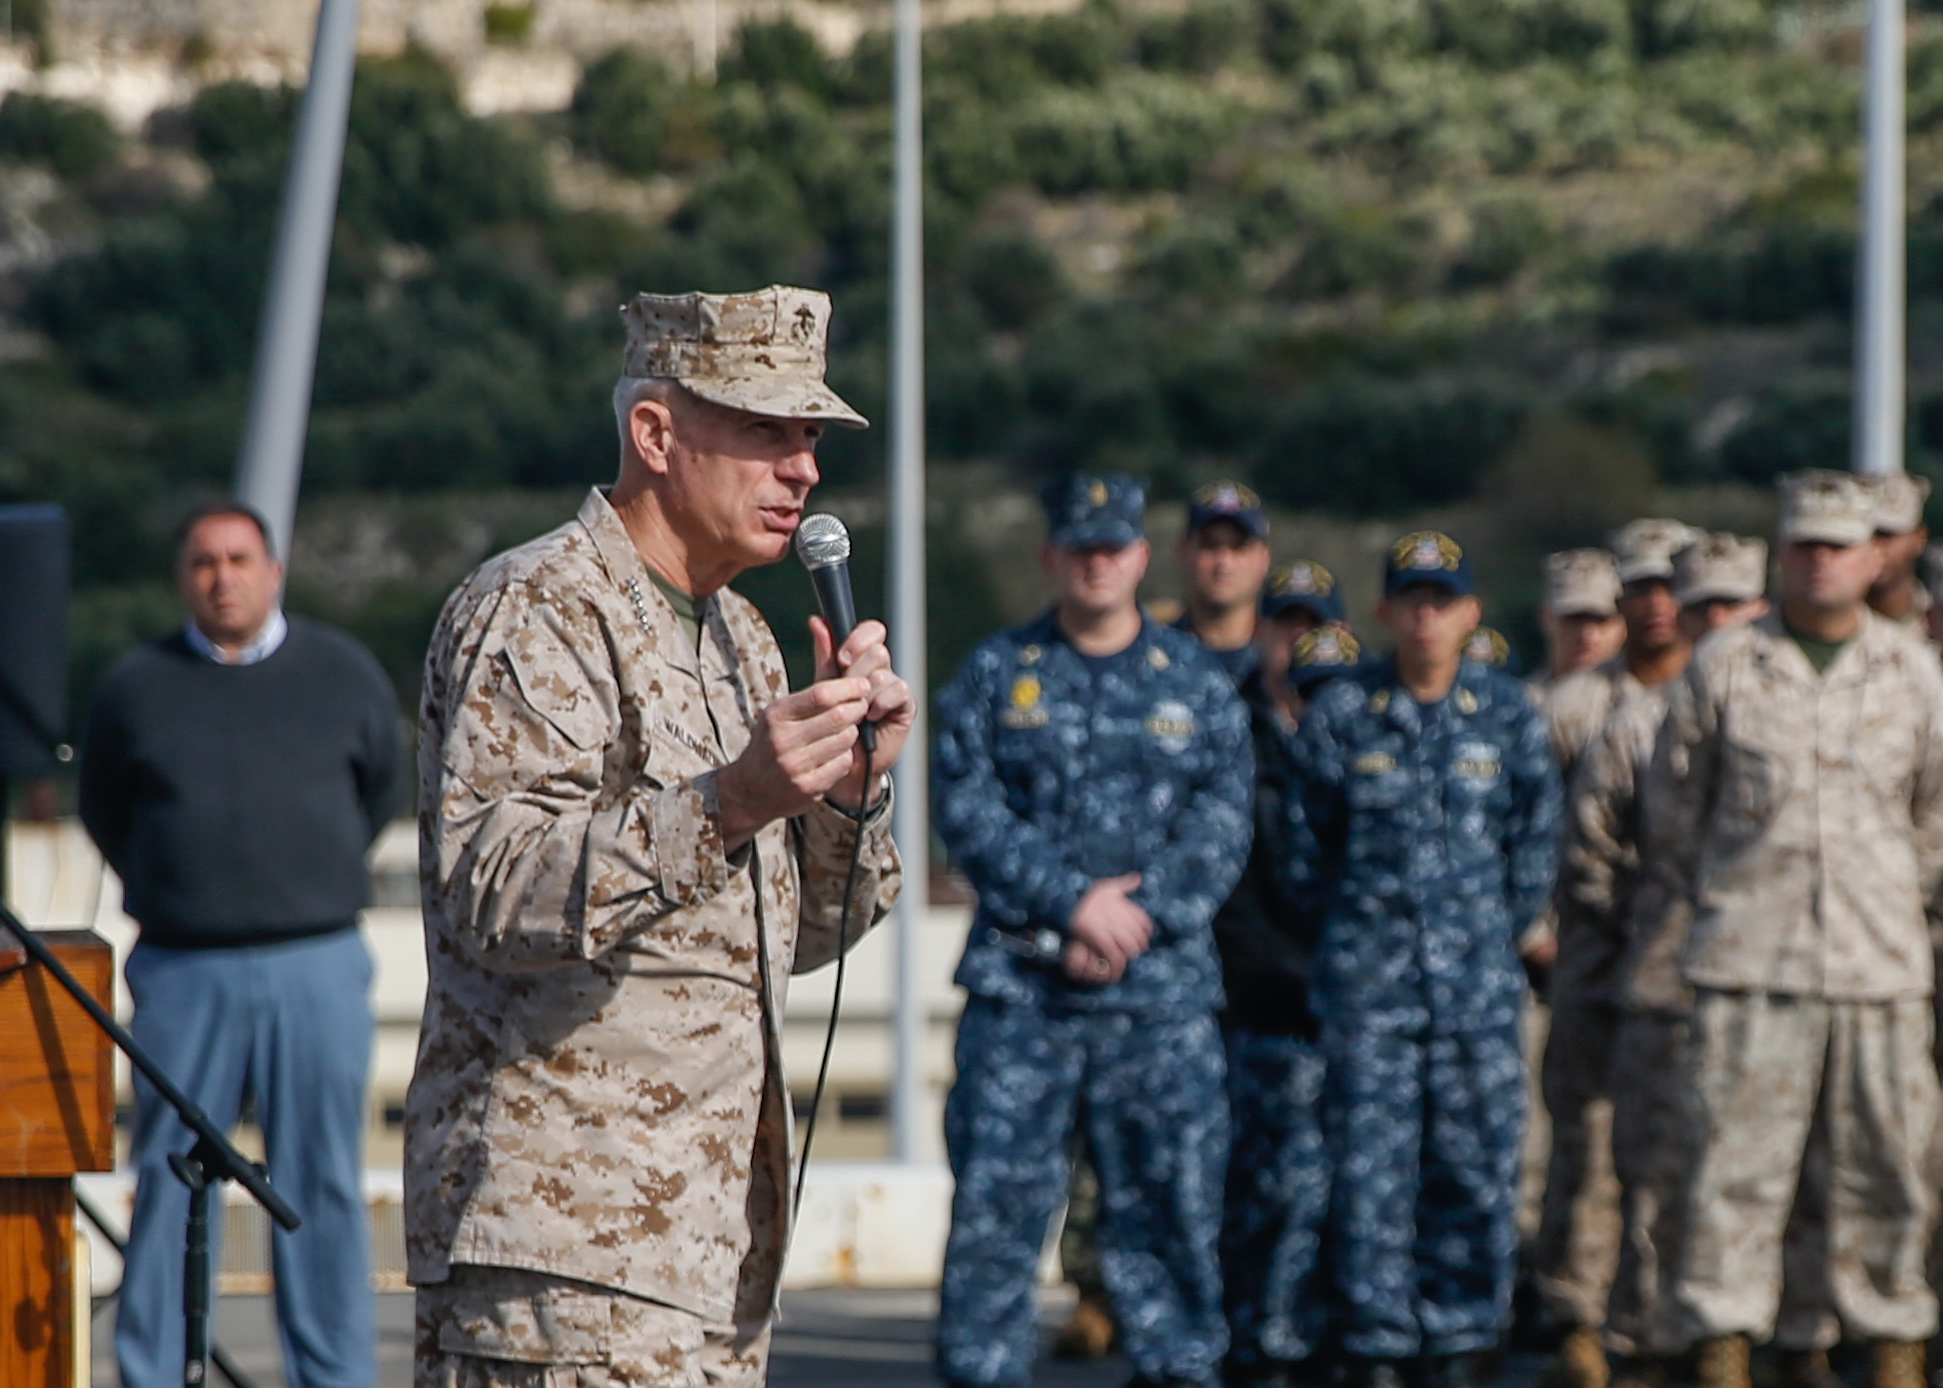 MEDITERRANEAN SEA (Nov. 29, 2017) – U U.S. Marine Corps Gen. Thomas D. Waldhauser, Commander, U.S. Africa Command, address Marines and Sailors of the 15th Marine Expeditionary Unit and America Amphibious Ready Group aboard the San Antonio-class amphibious transport dock ship USS San Diego (LPD 22), Nov. 29, 2017. Waldhauser visited the USS San Diego (LPD 22) to personally congratulate Marines and Sailors of the 15th Marine Expeditionary Unit and America Amphibious Ready Group for the work and efforts in supporting missions in the 6th Fleet area of operations. USS San Diego is deployed with the America ARG and 15th MEU to support maritime security operations and theater security cooperation efforts in the U.S. 6th Fleet area of operations.(U.S. Marine Corps photo by Cpl. Jeremy Laboy/Released)